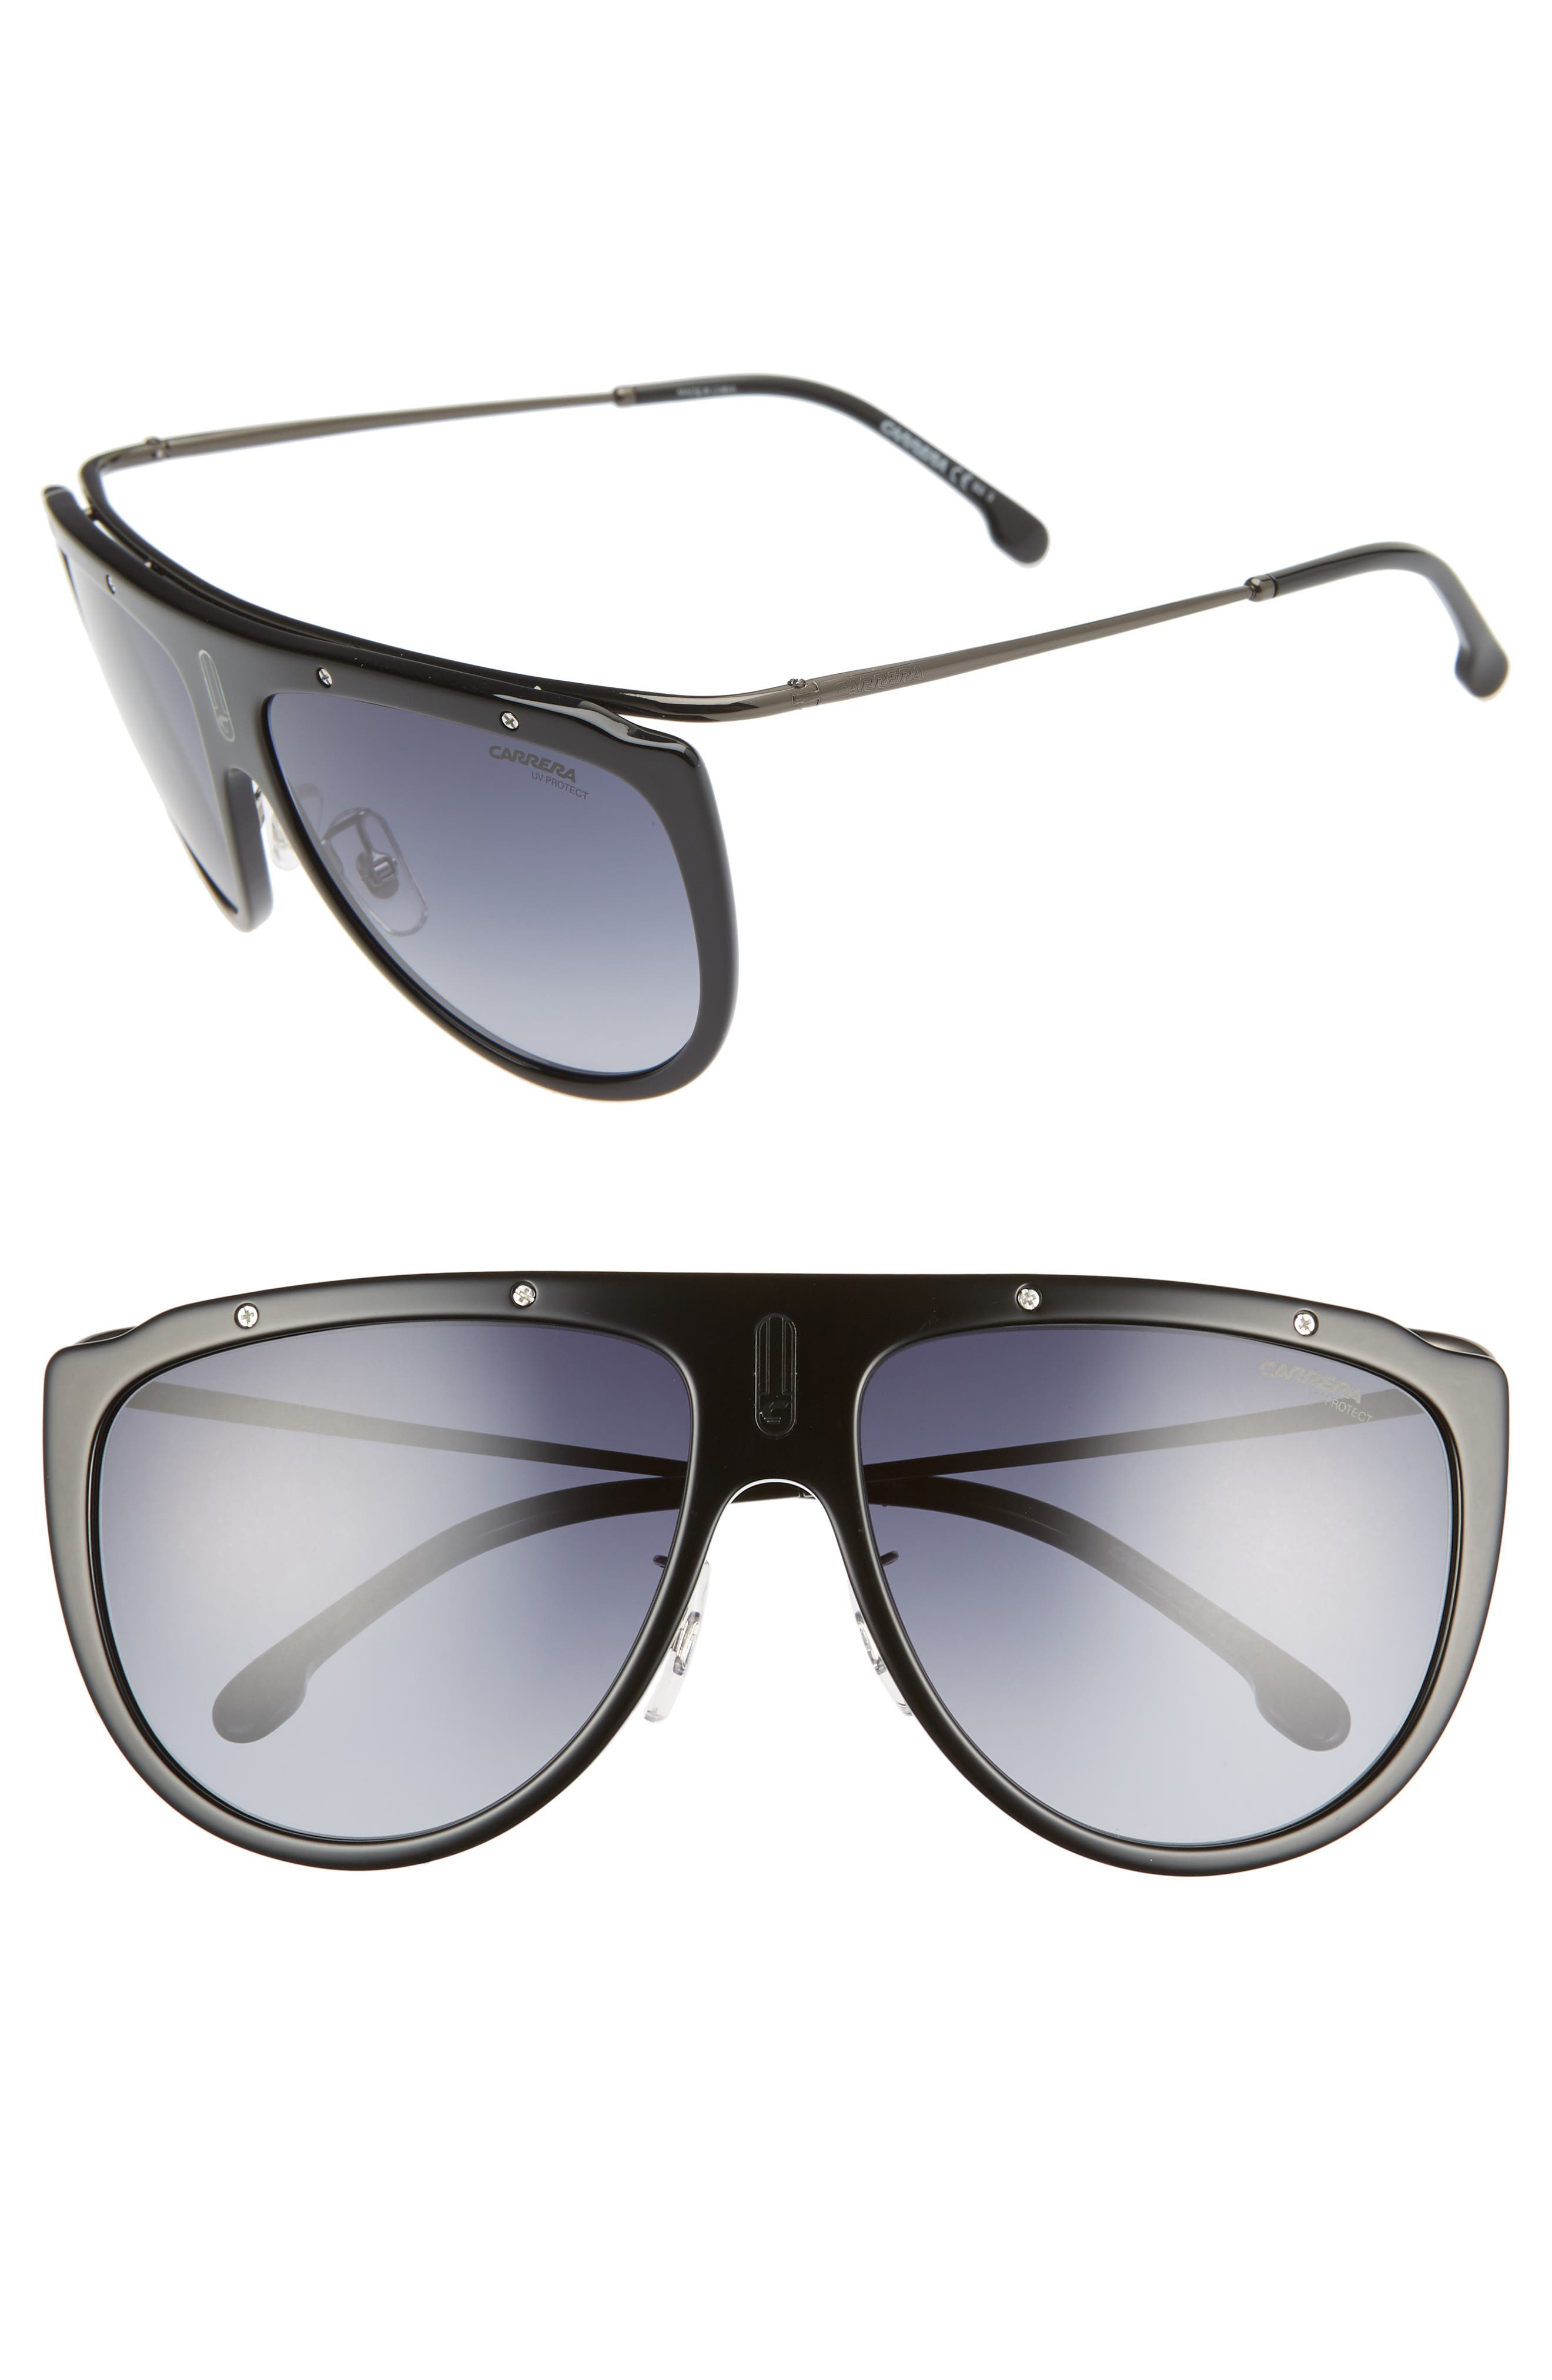 Carrera Eyewear 60Mm Aviator Sunglasses - Black